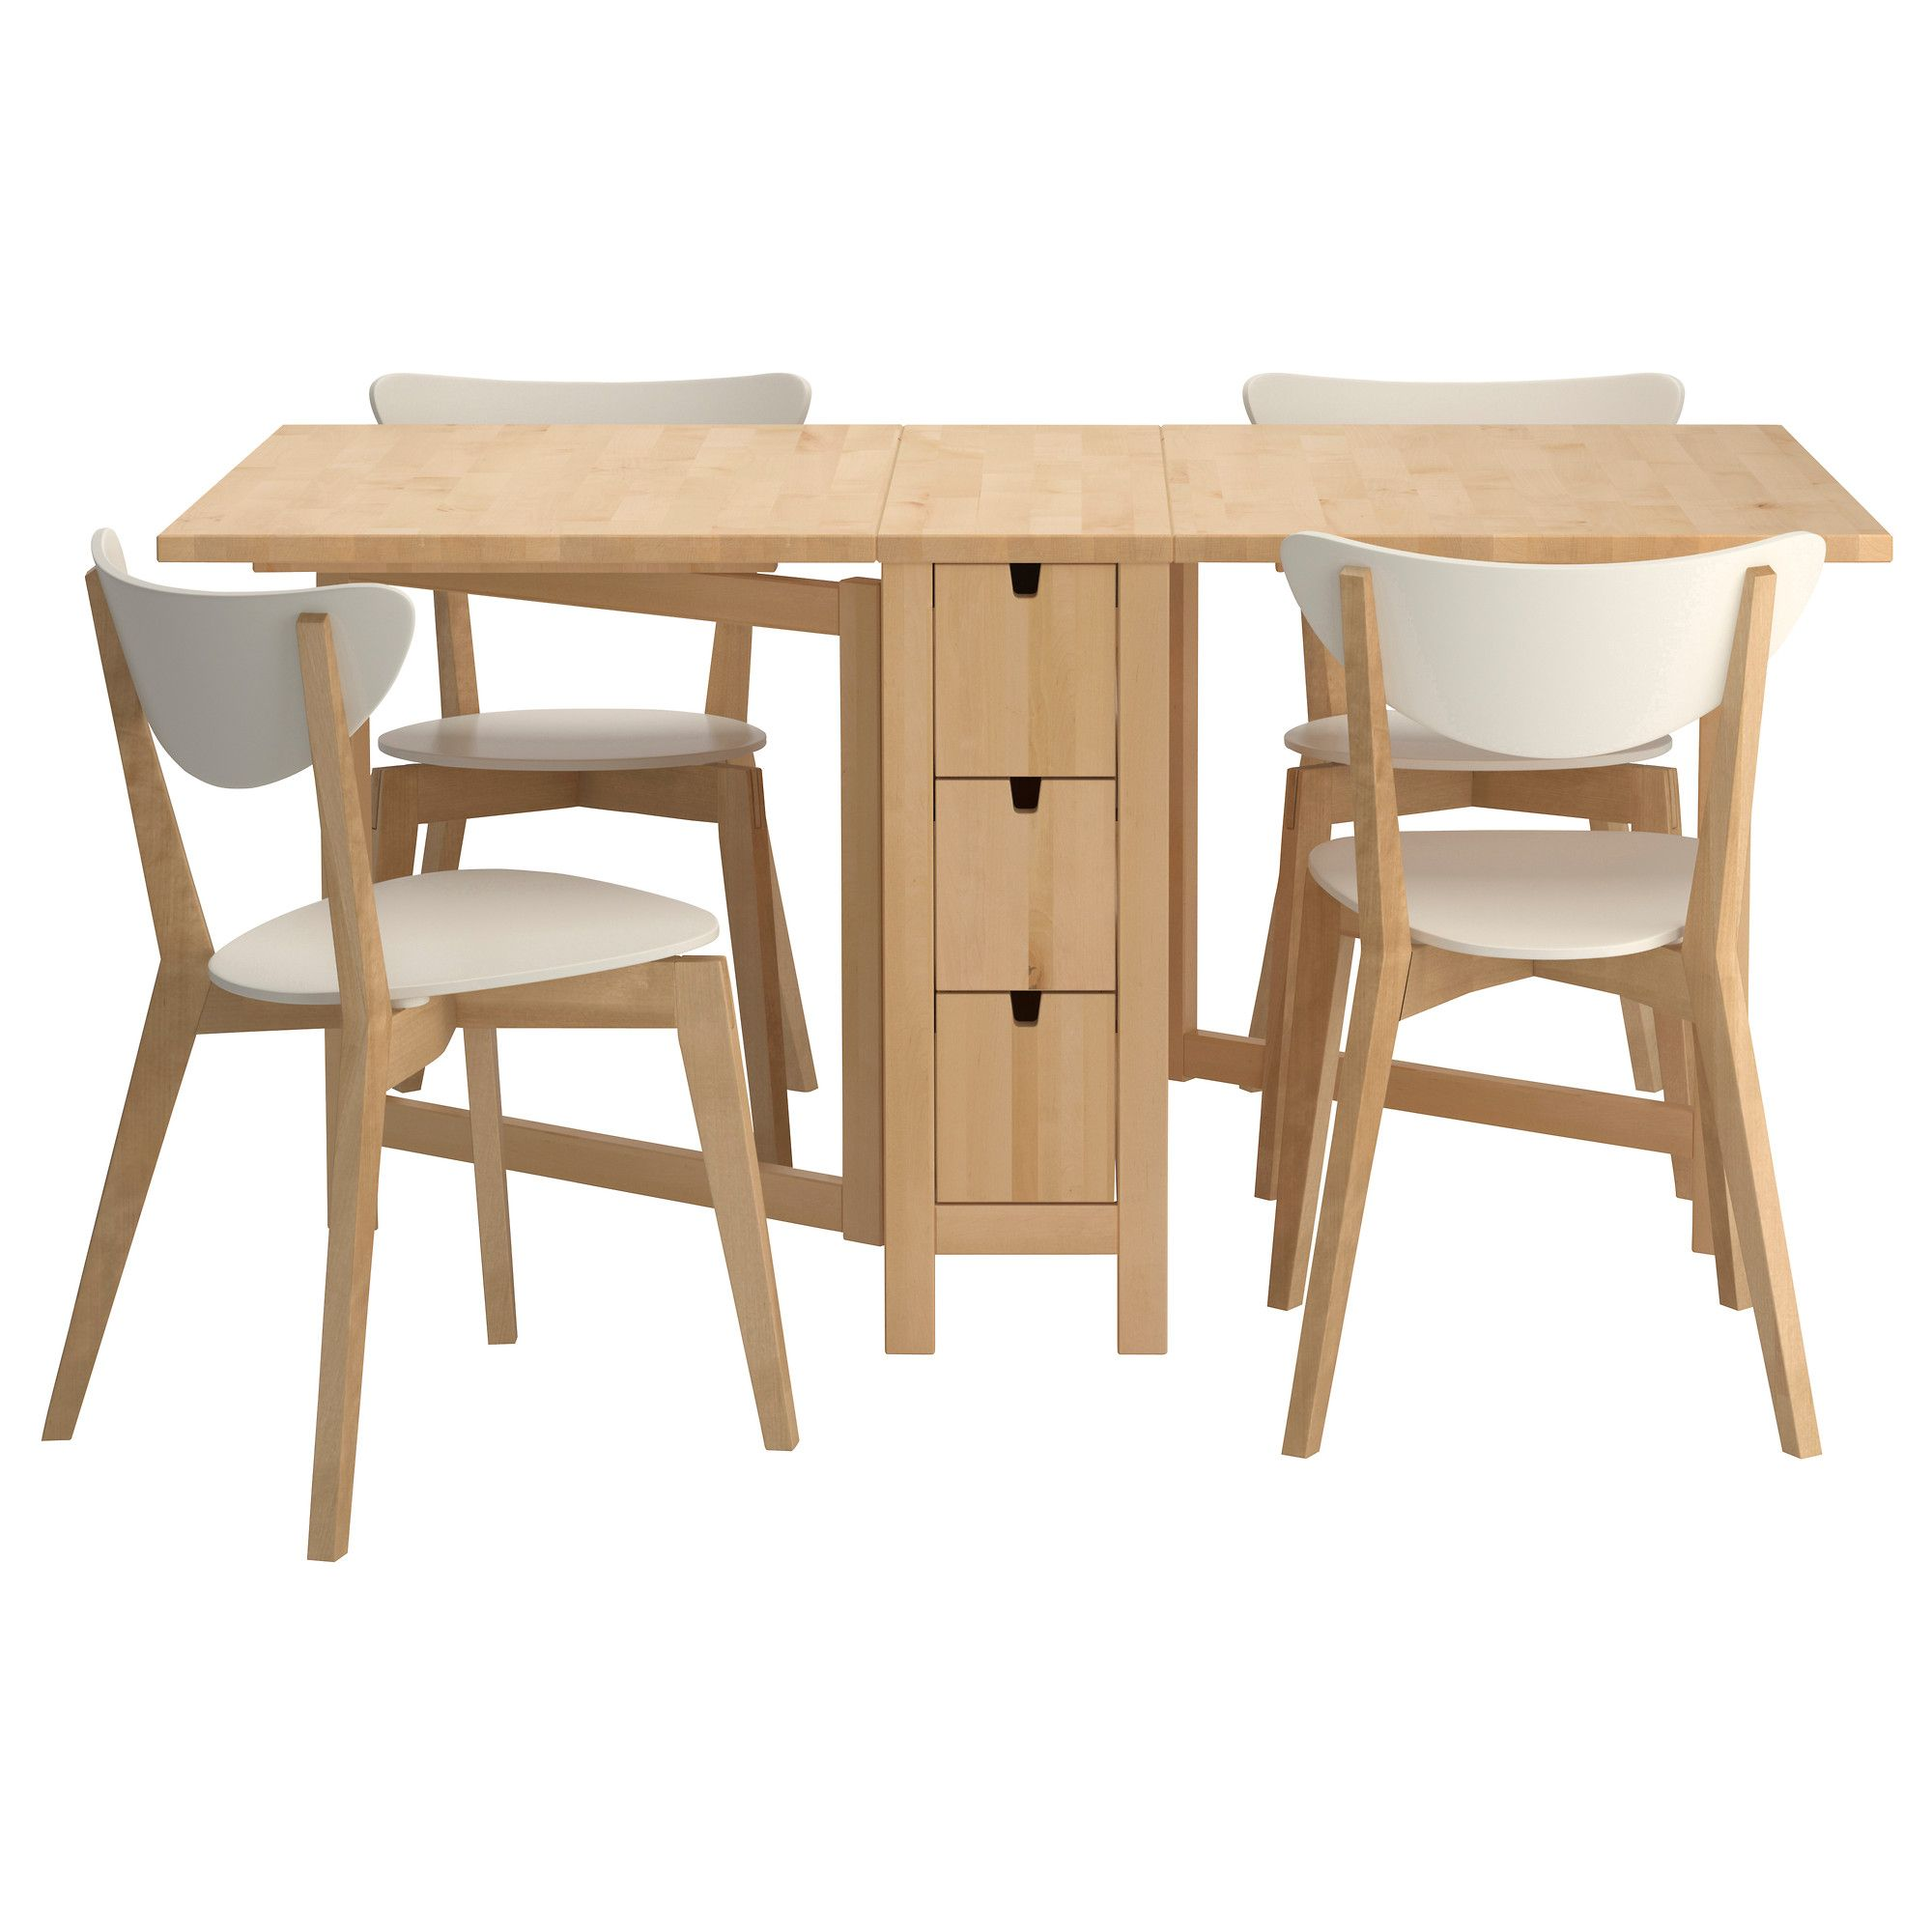 Norden nordmyra table and 4 chairs ikea for the love for Dining set ideas